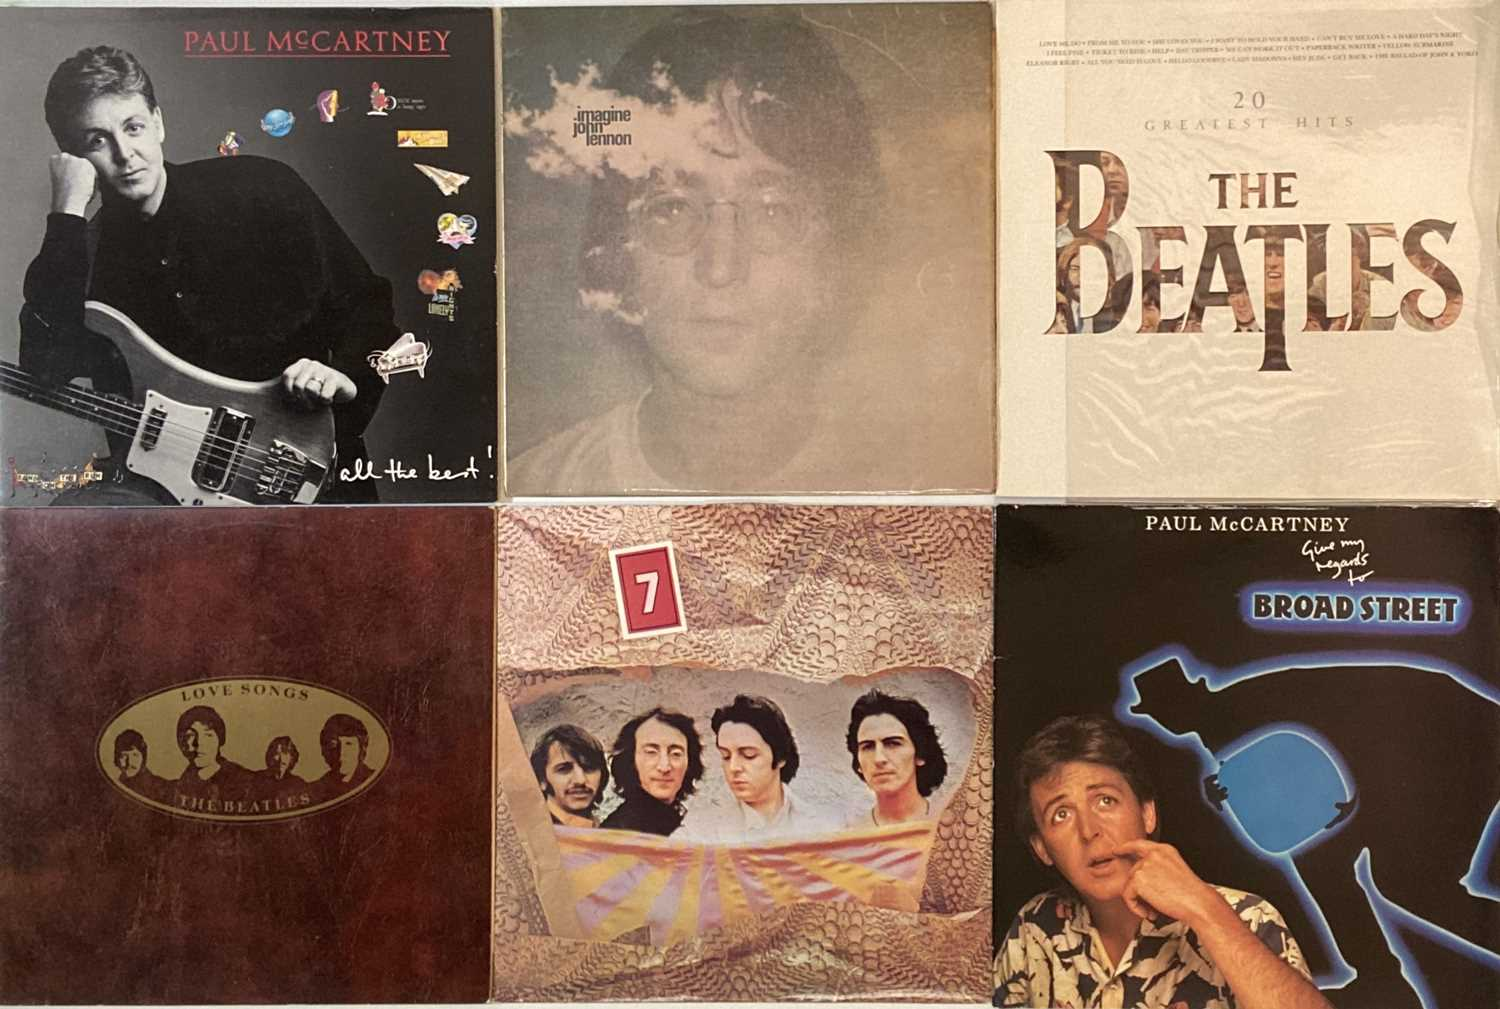 THE BEATLES AND RELATED - LPs - Image 4 of 4